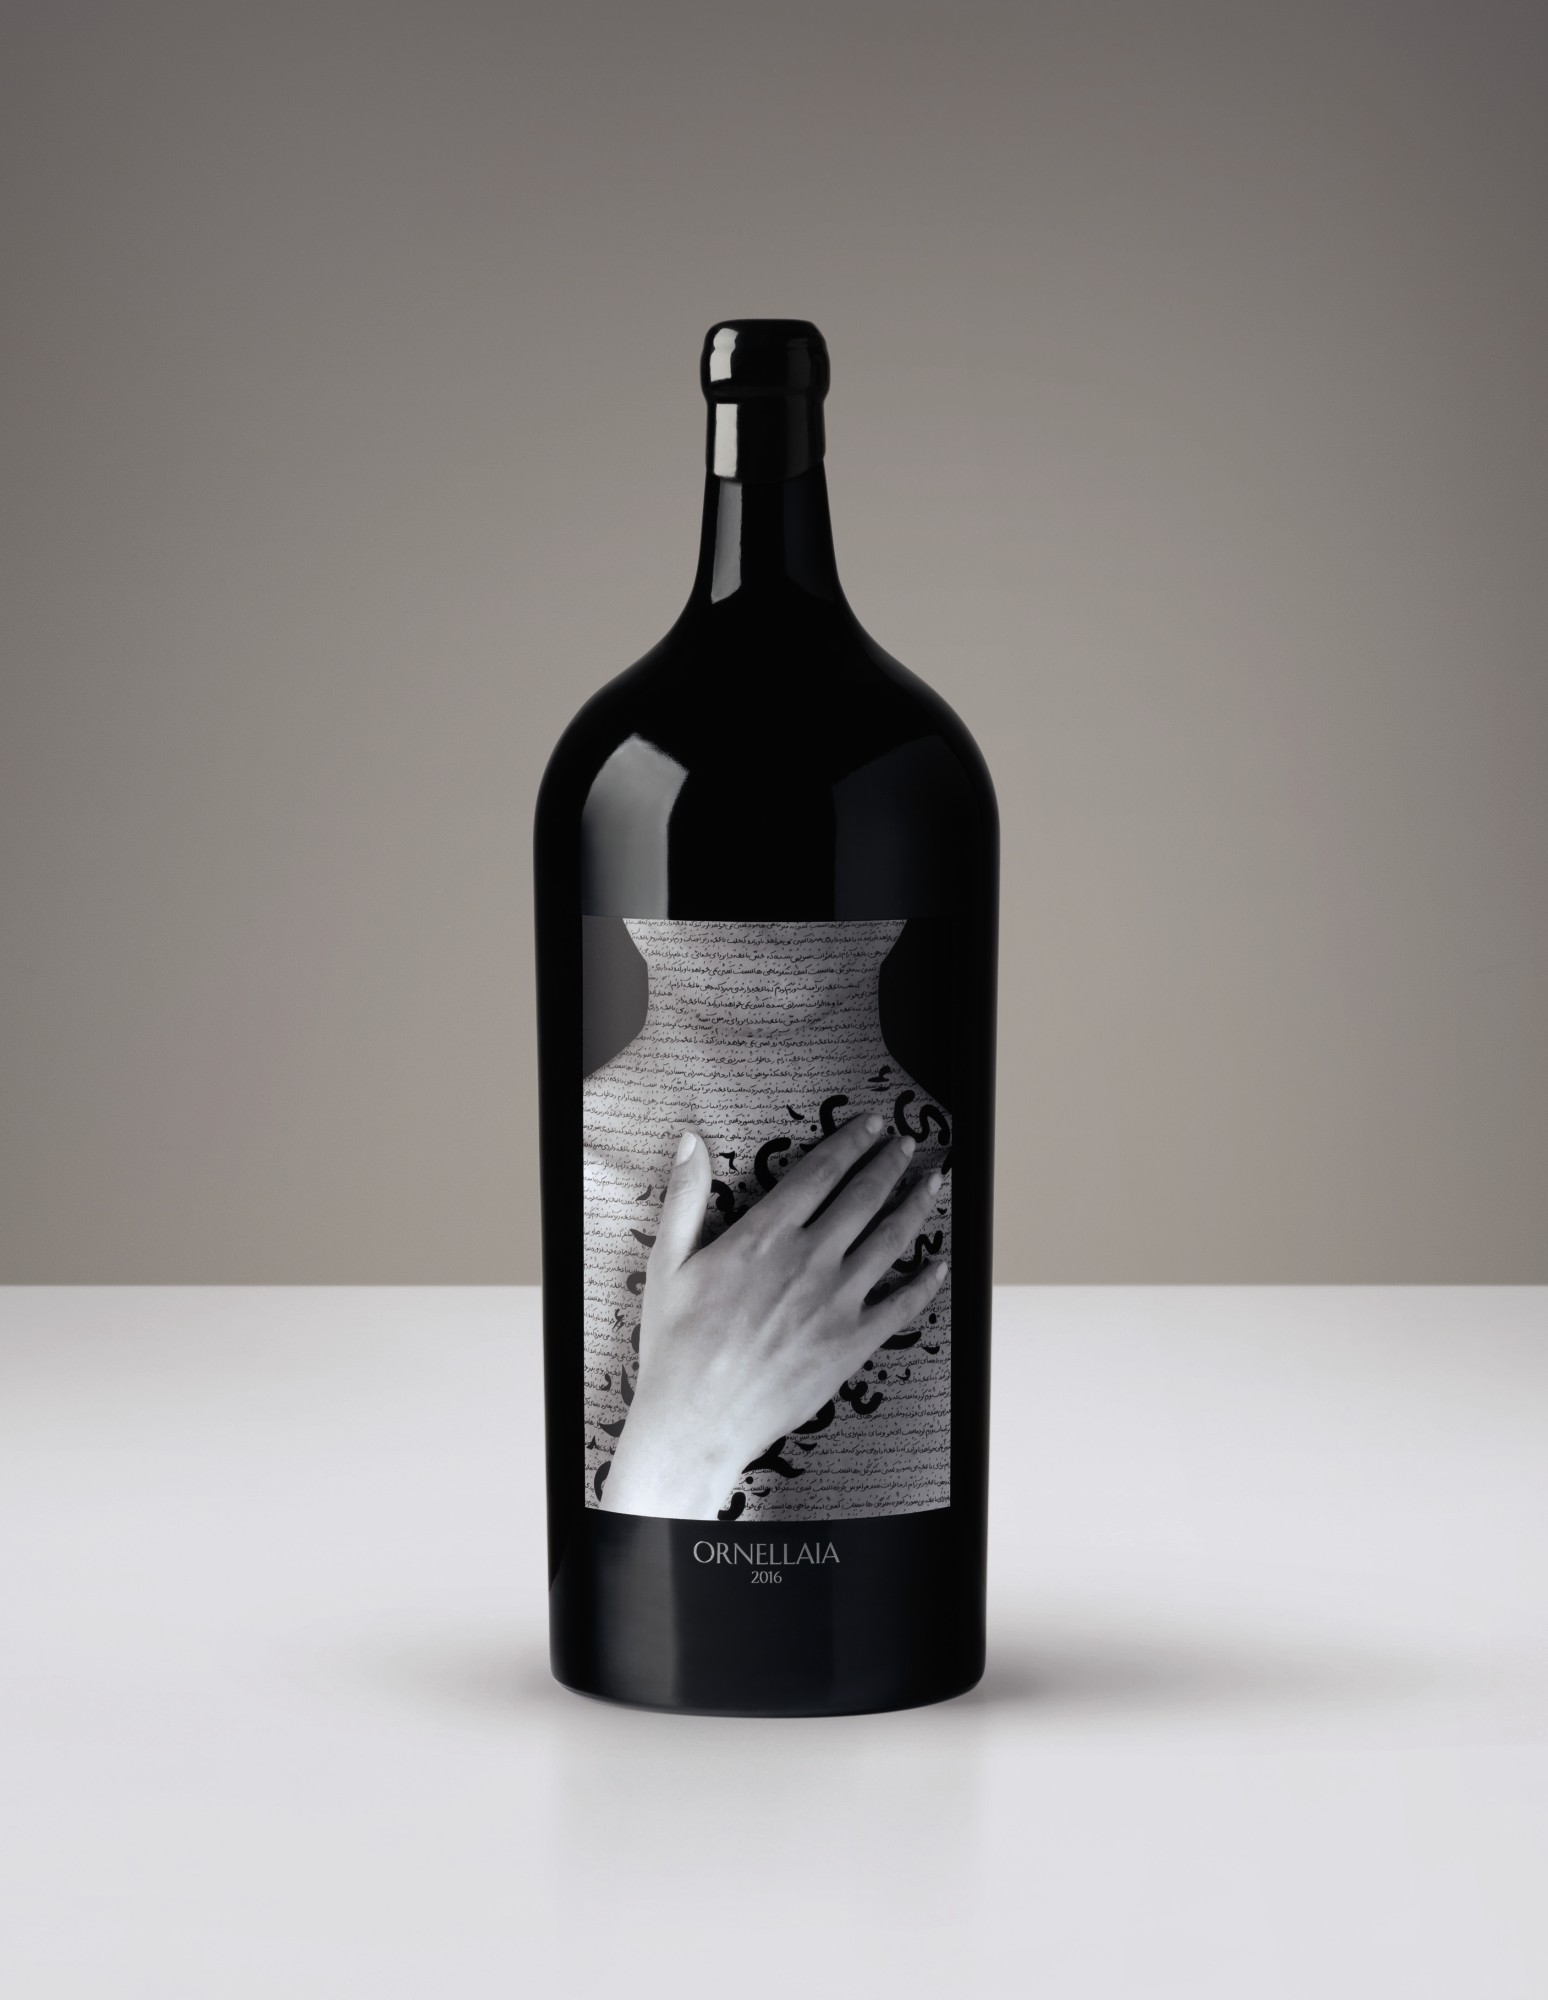 1 SALMANAZAR (9L) ORNELLAIA, VENDEMMIA D'ARTISTA, 'LA TENSIONE' BY SHIRIN NESHAT, 2016  WITH VISIT, STAY & DINNER AT ORNELLAIA FOR 6